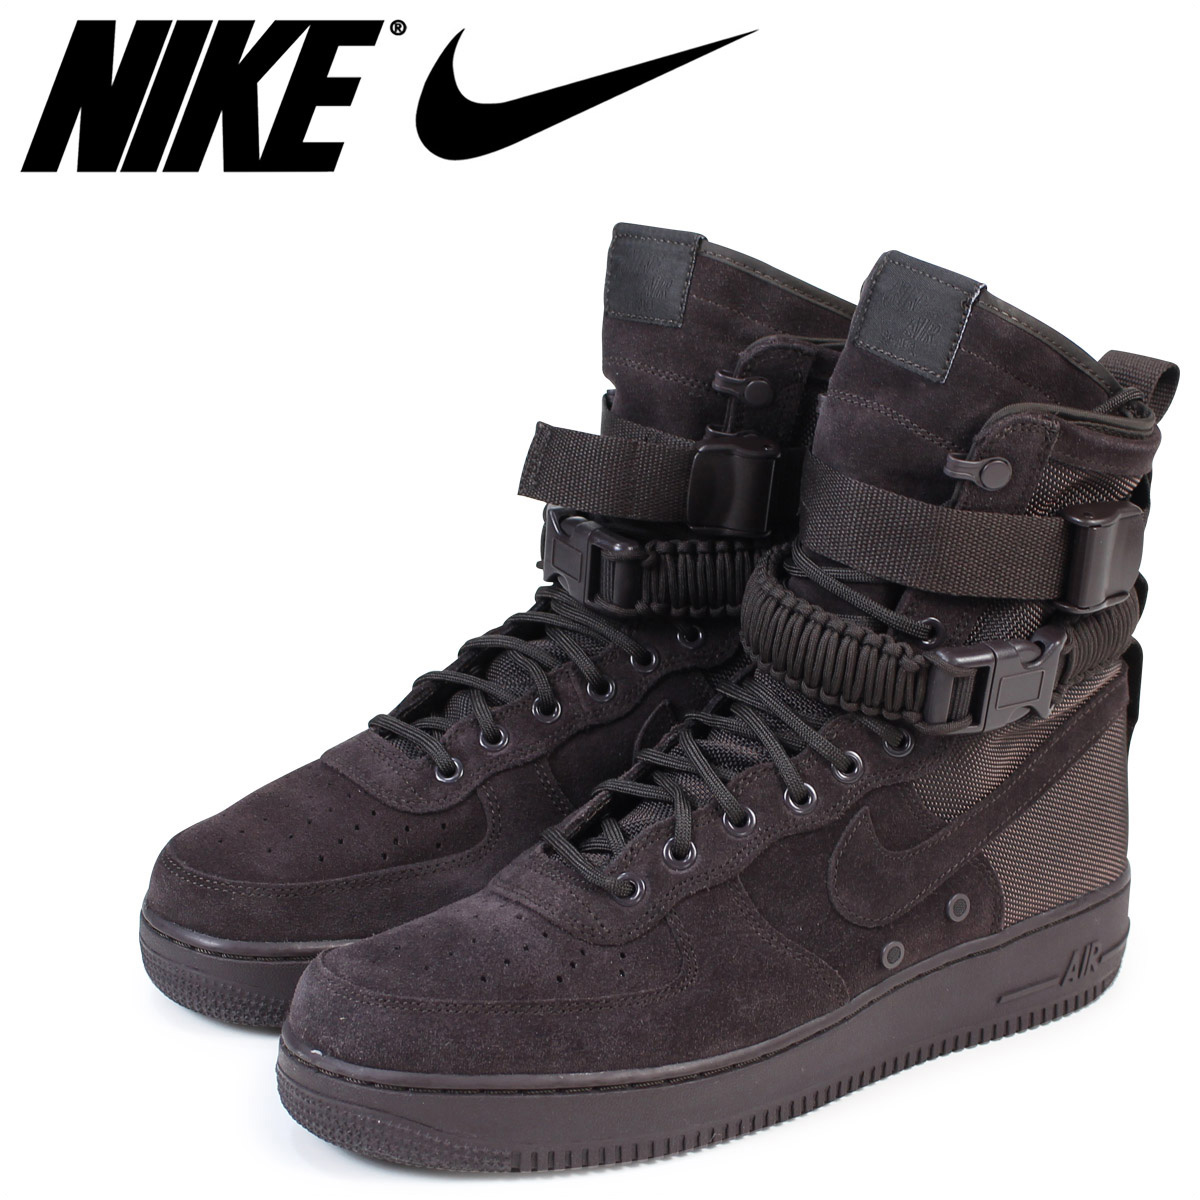 NIKE Nike air force 1 high sneakers SPECIAL FIELD AIR FORCE 1 864,024-203  SF AF1 men shoes purple